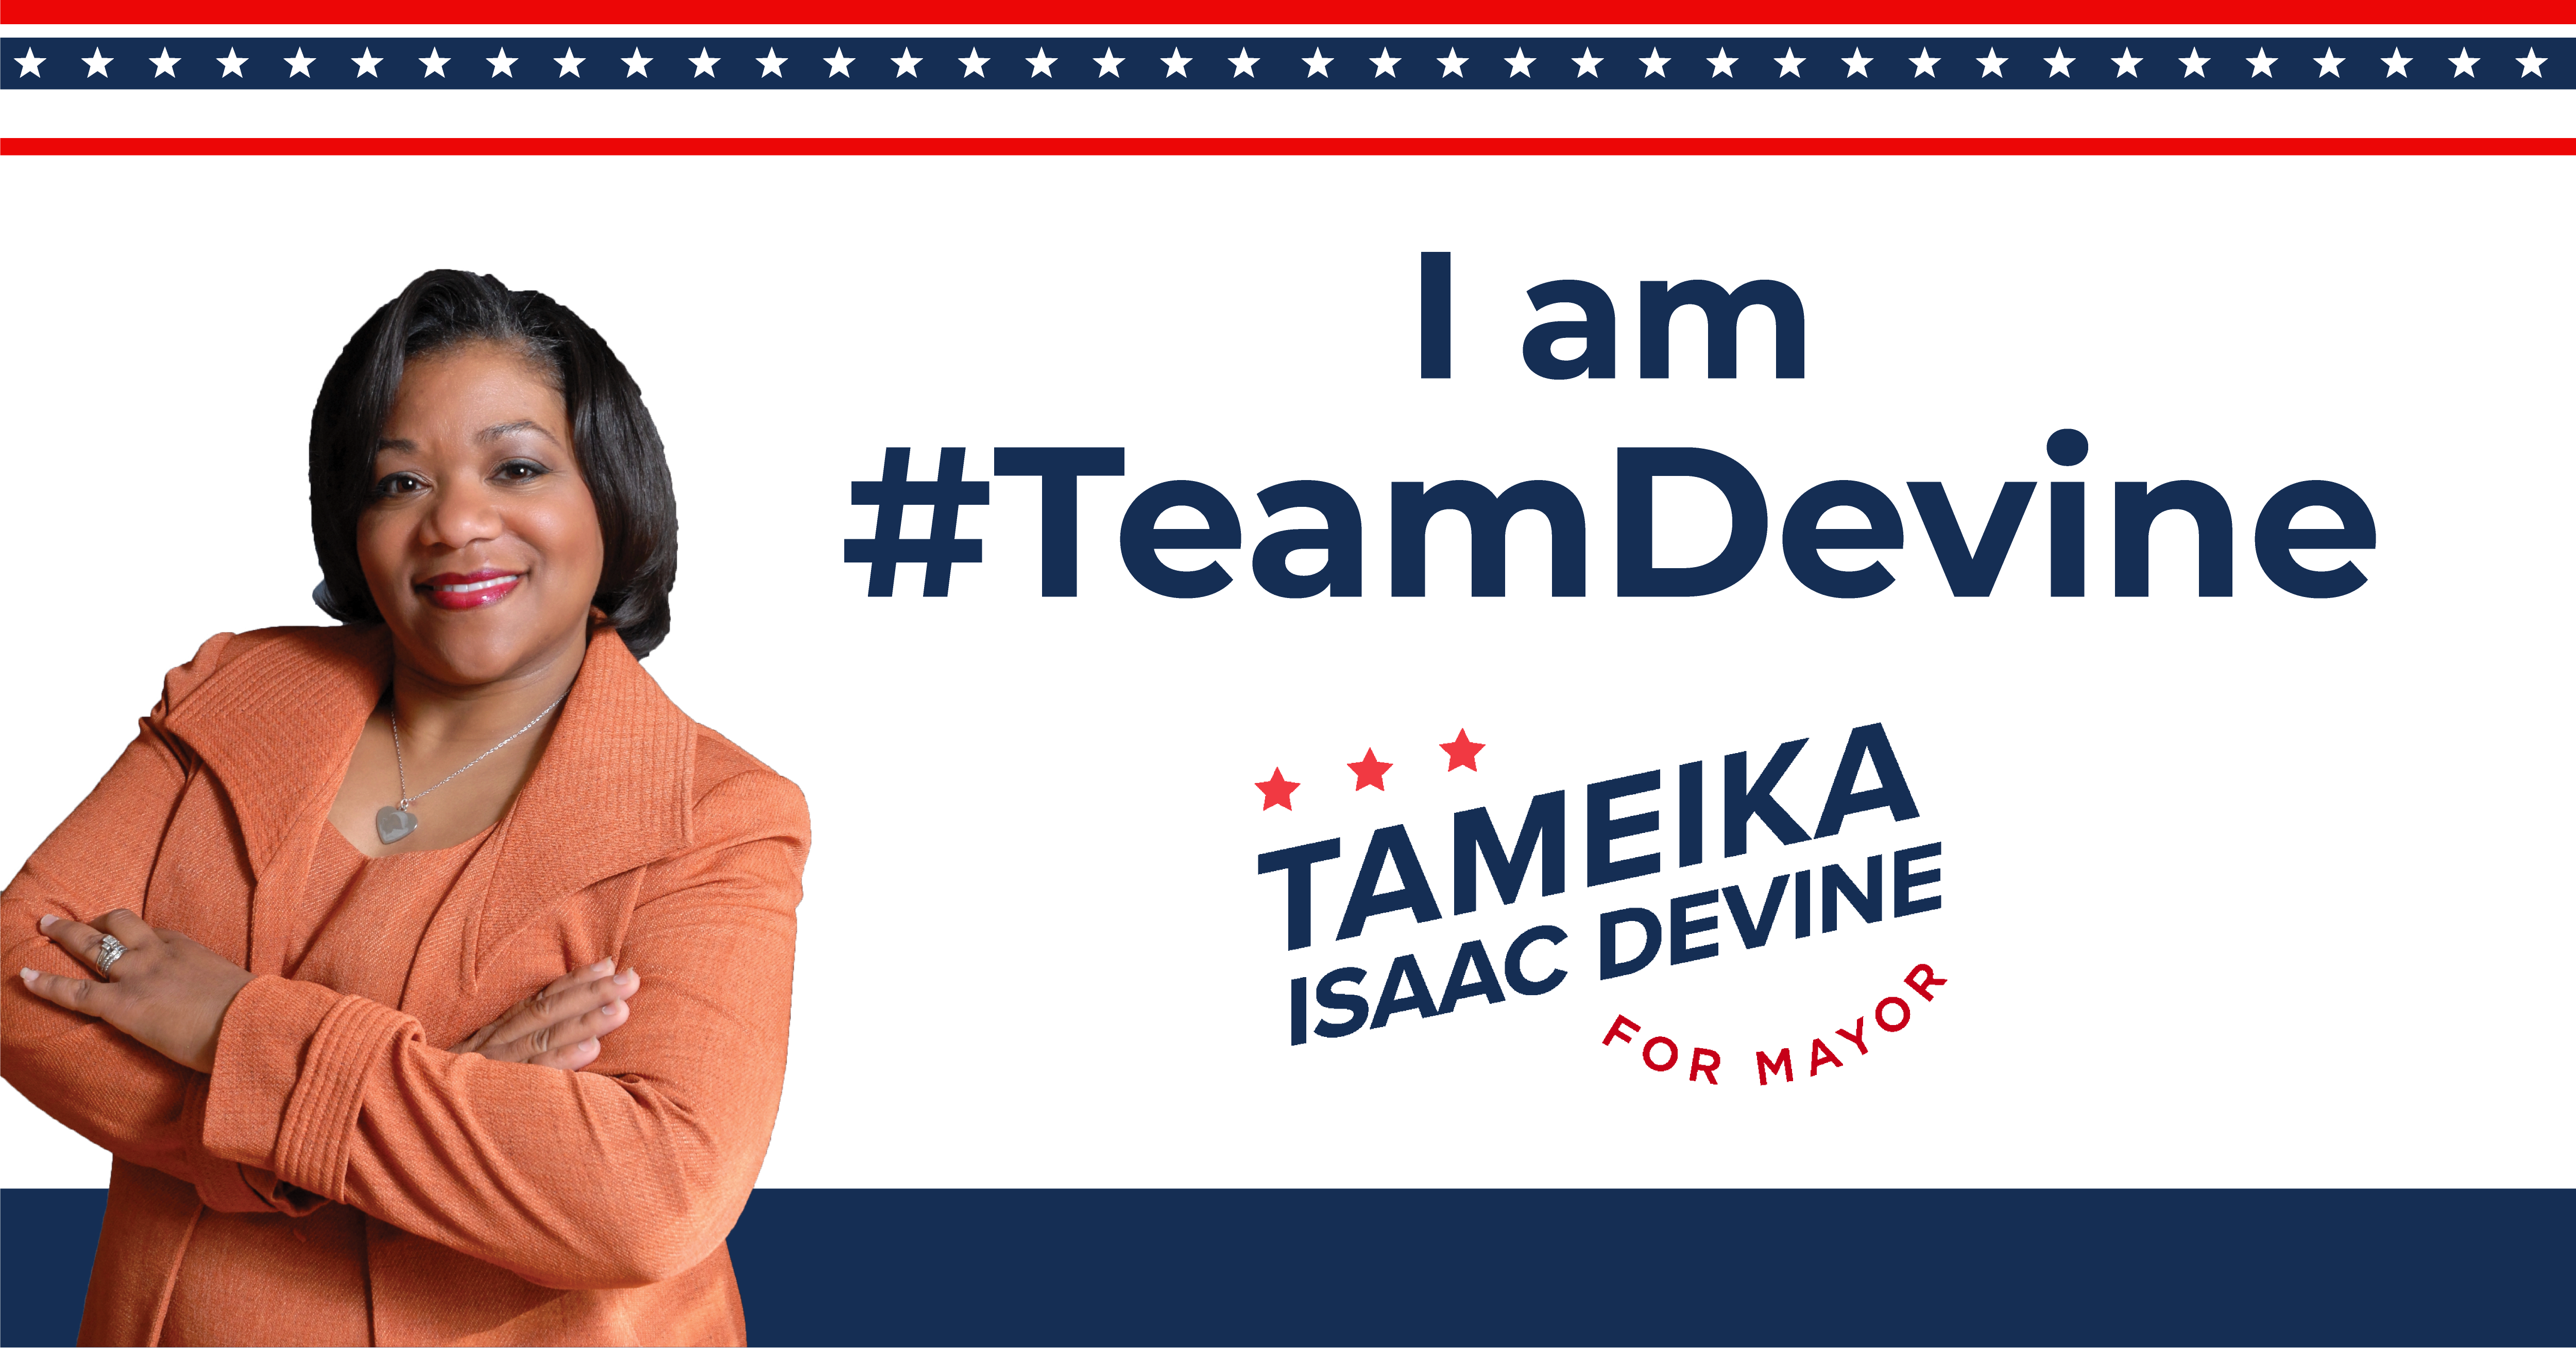 Tameika Isaac Devine for Mayor - Social Media Toolkit